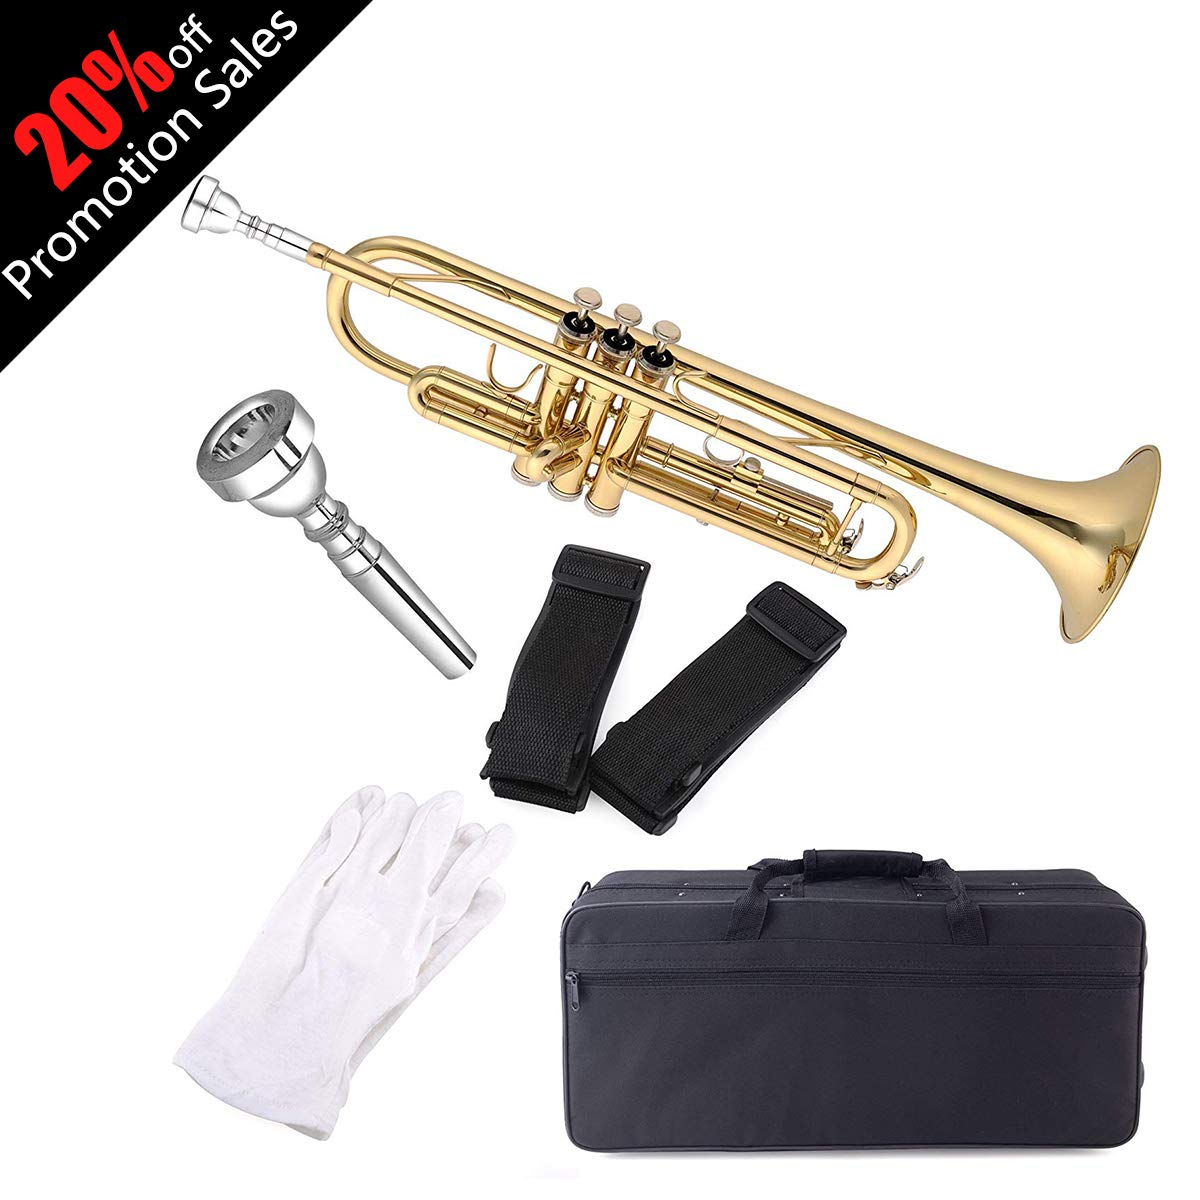 Aileen Lexington Gold Bb Key Student Model Trumpet Includes Hard Case, Cleaning Rod and Cloth, Gloves by Aileen (Image #1)